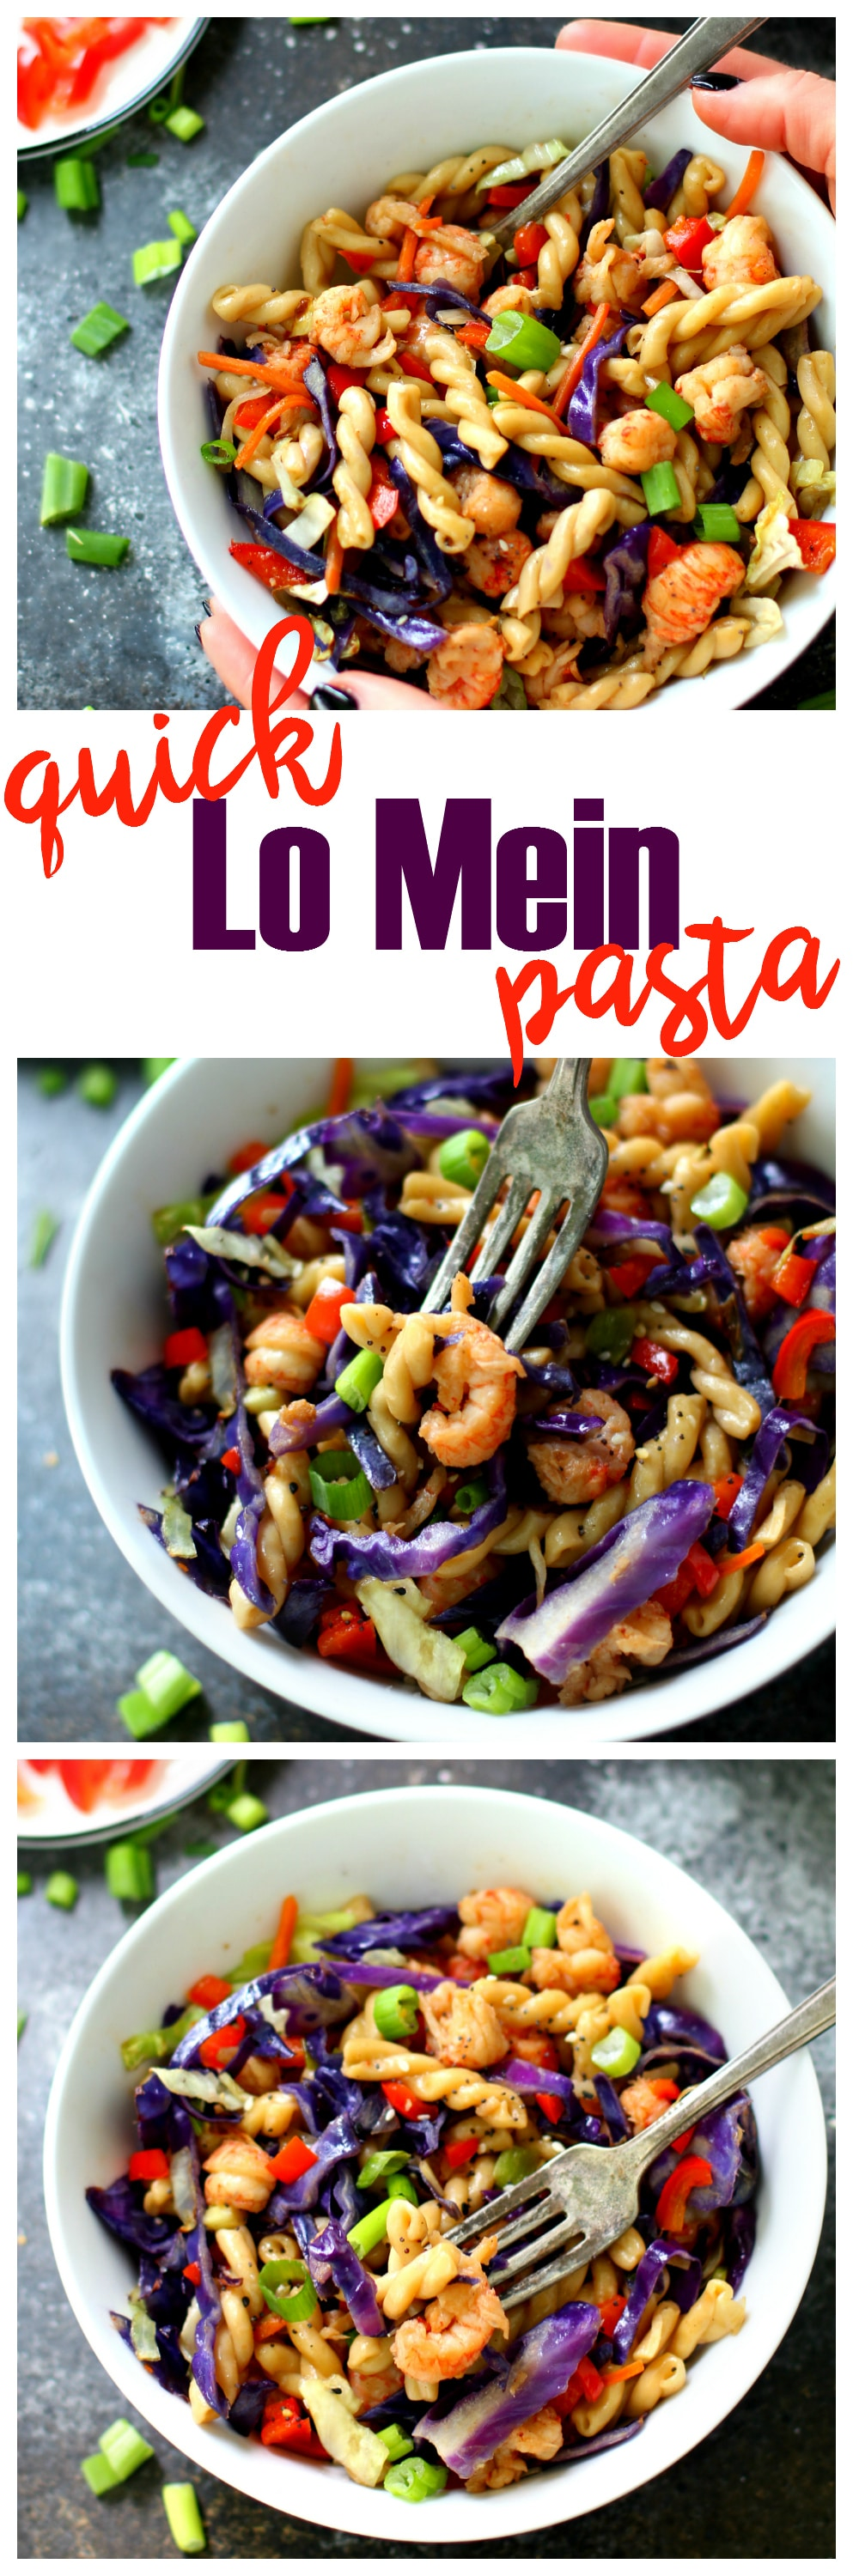 The easiest lo mein you will ever make in 15 min from start to finish. And it's so much quicker, tastier and healthier than take-out!